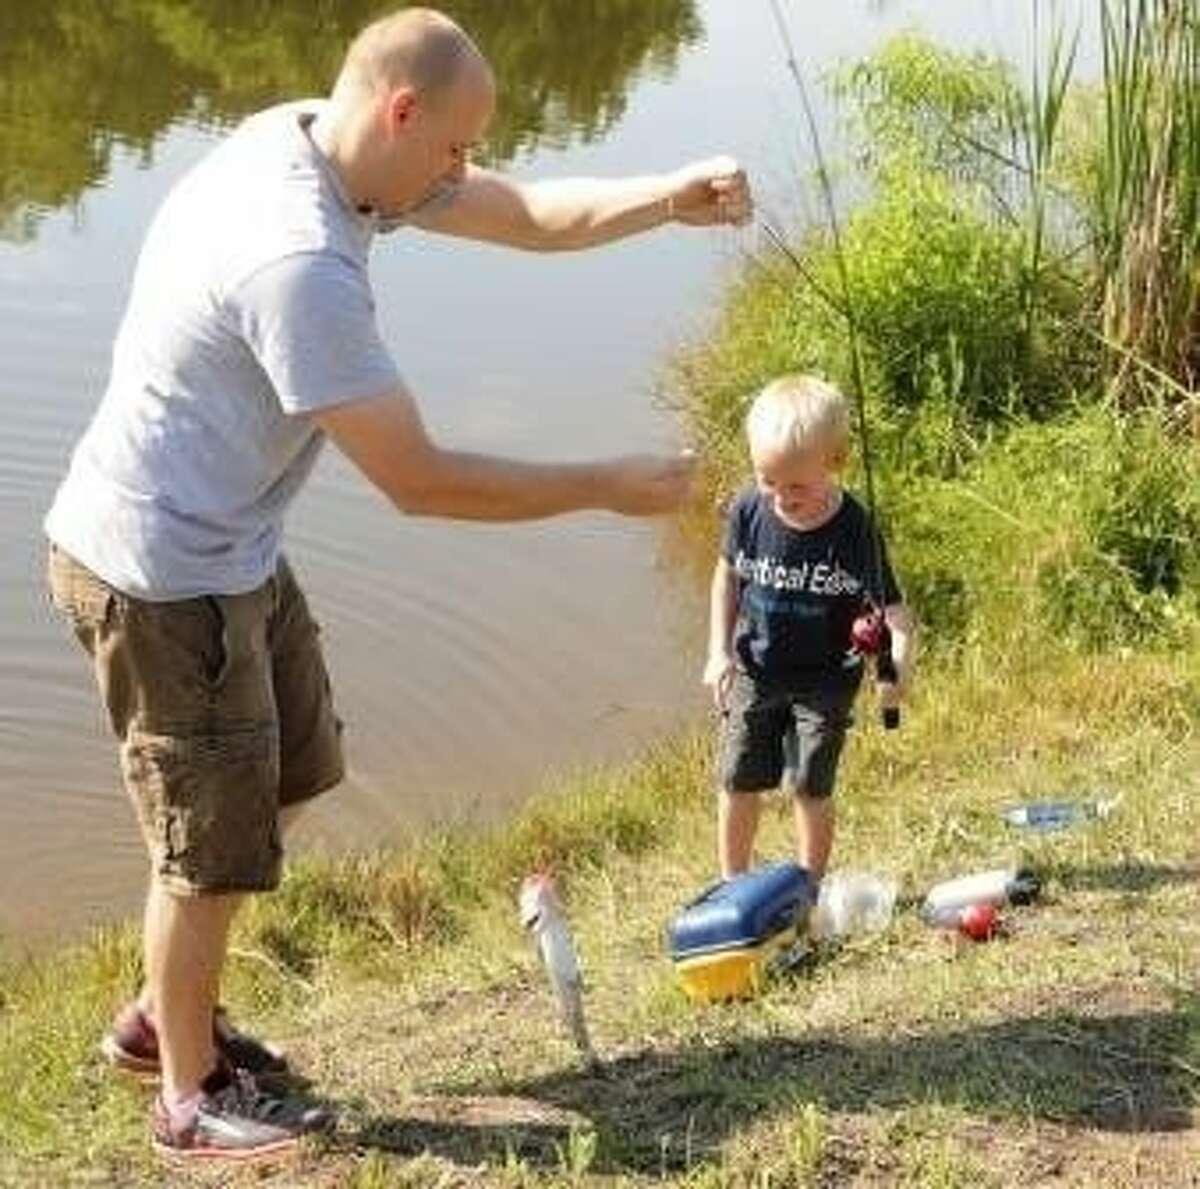 Kids ages 16 and under, with their parents , are invited to the Friendswood Youth Fishing Derby, Saturday, May 2 at 9 a.m.